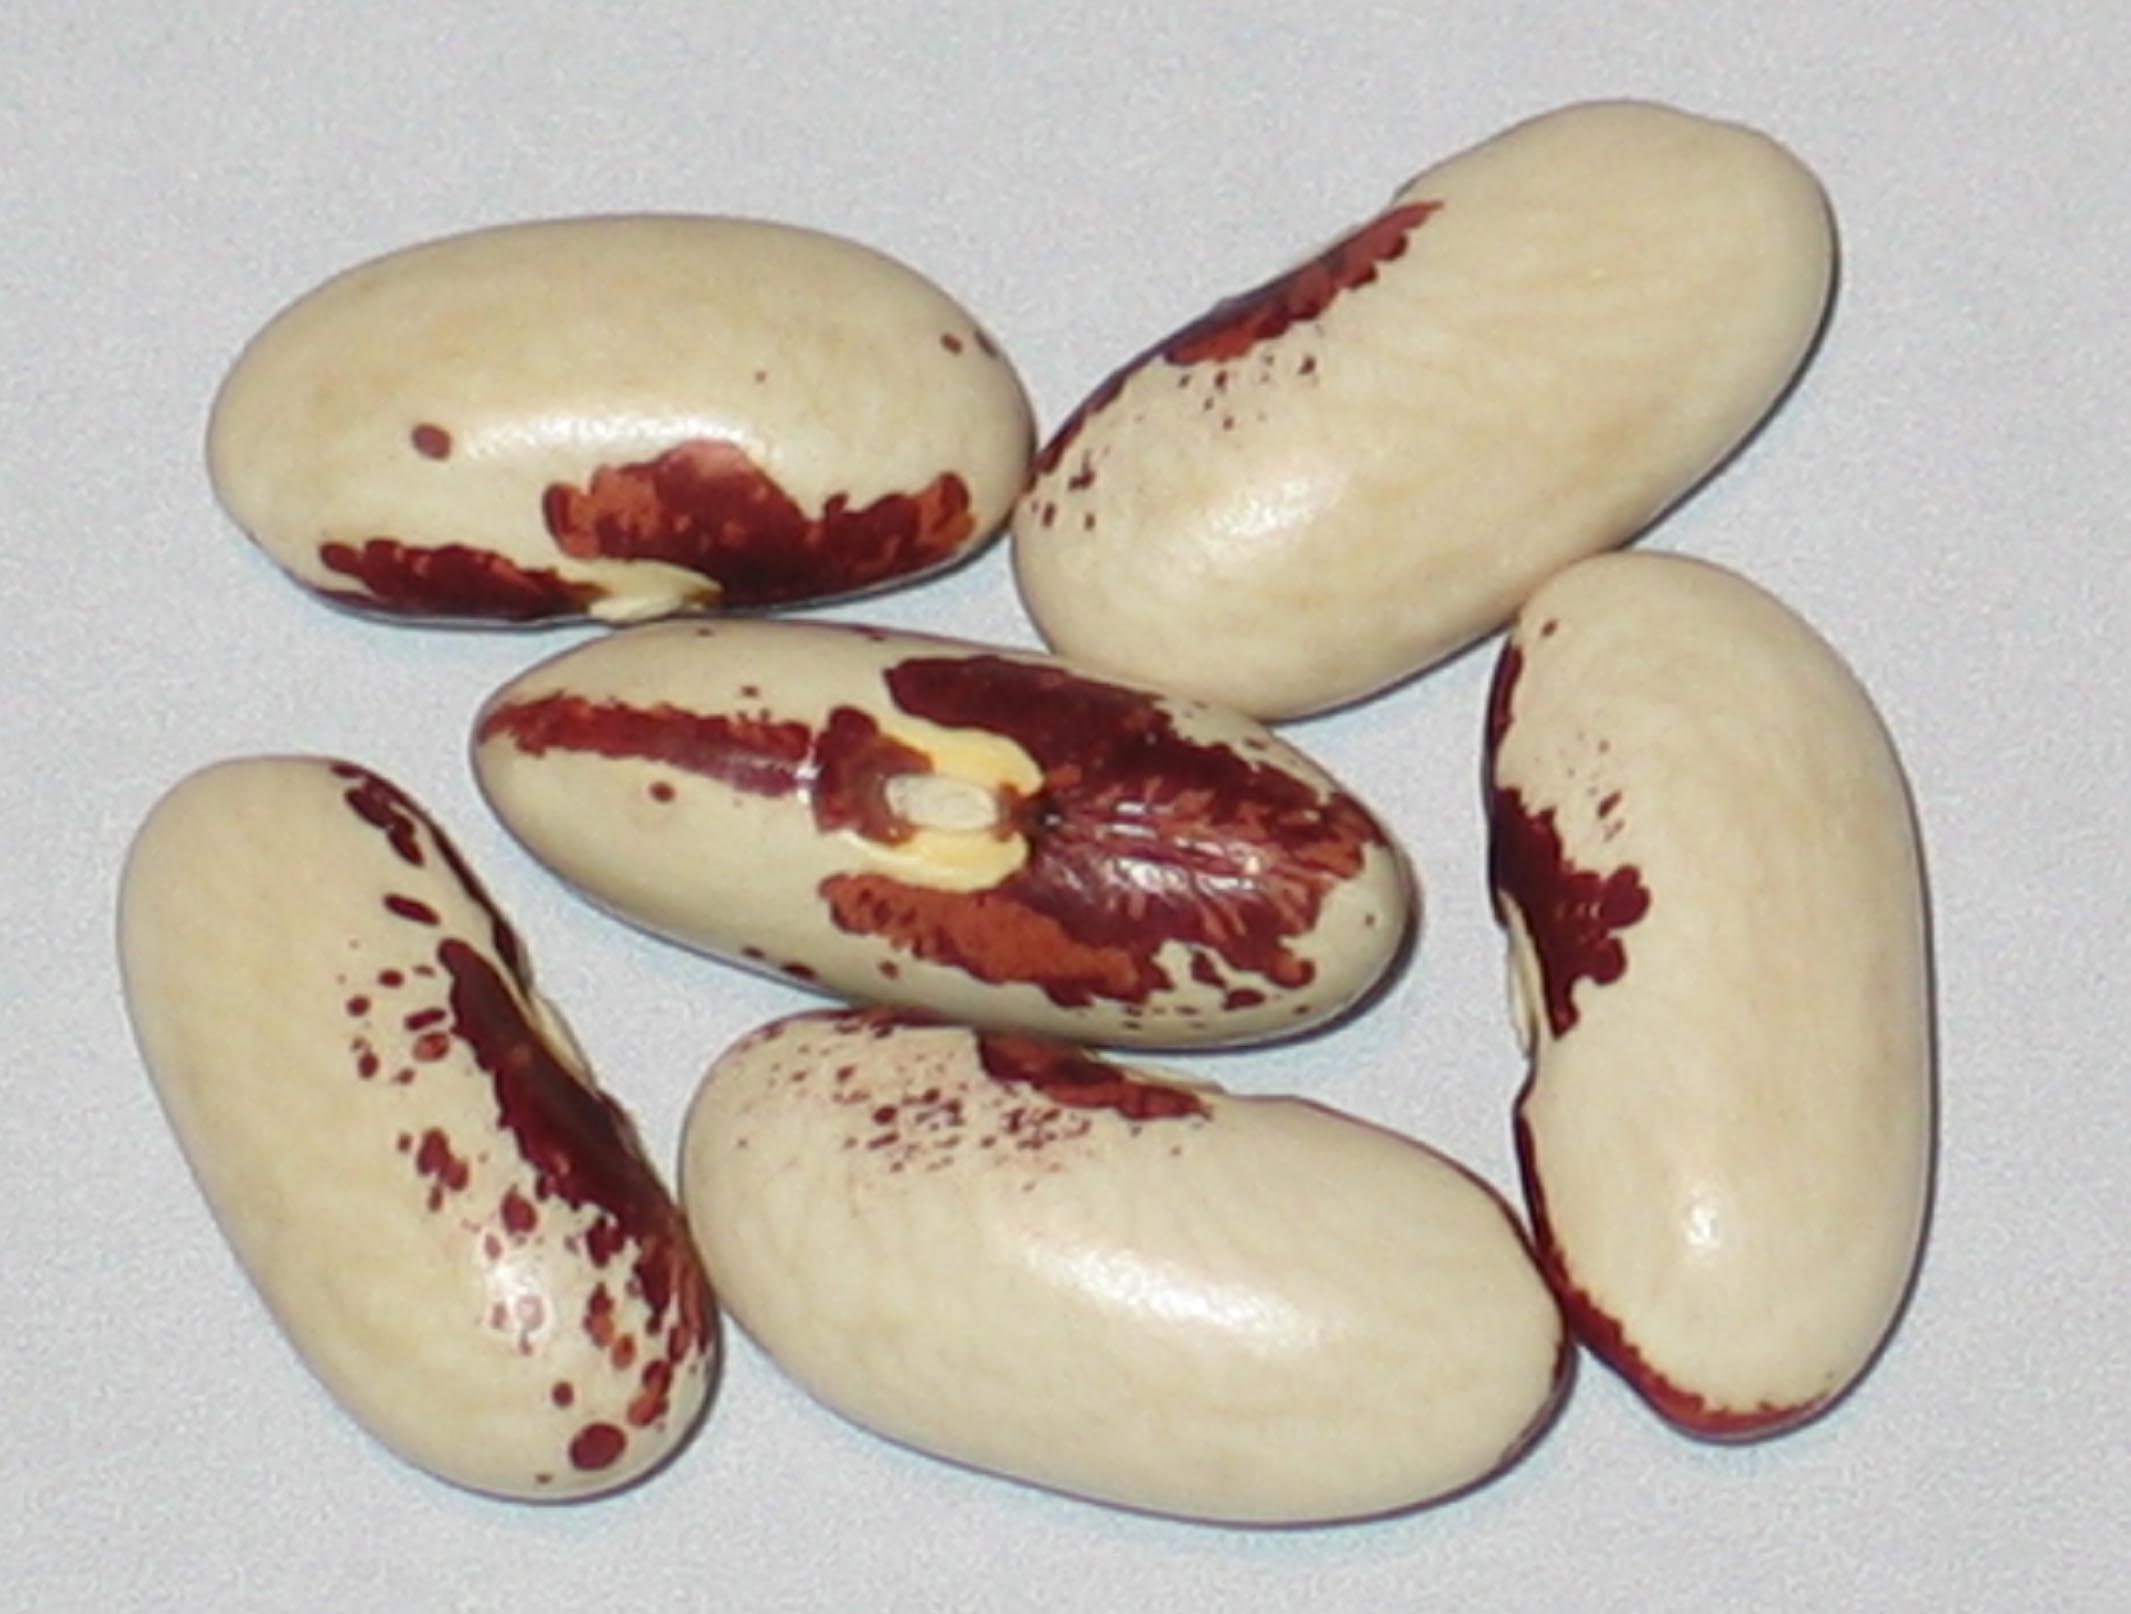 image of Rode Soldatenboon beans